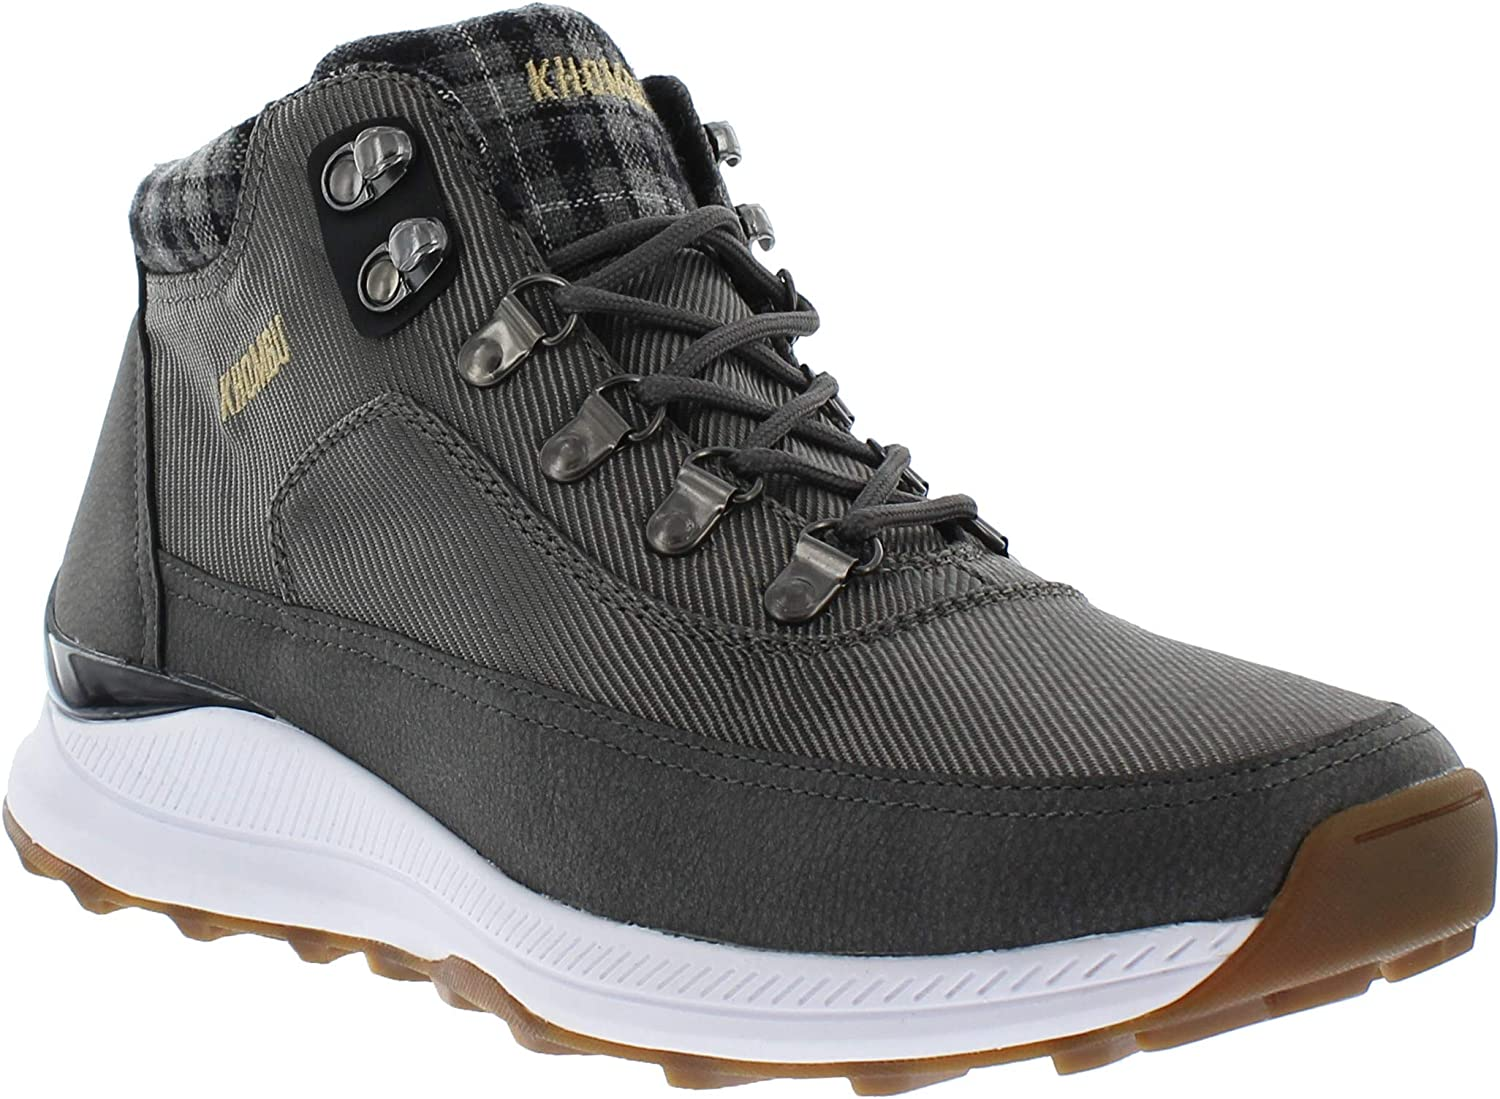 Khombu ROM Mens Hiking Boot